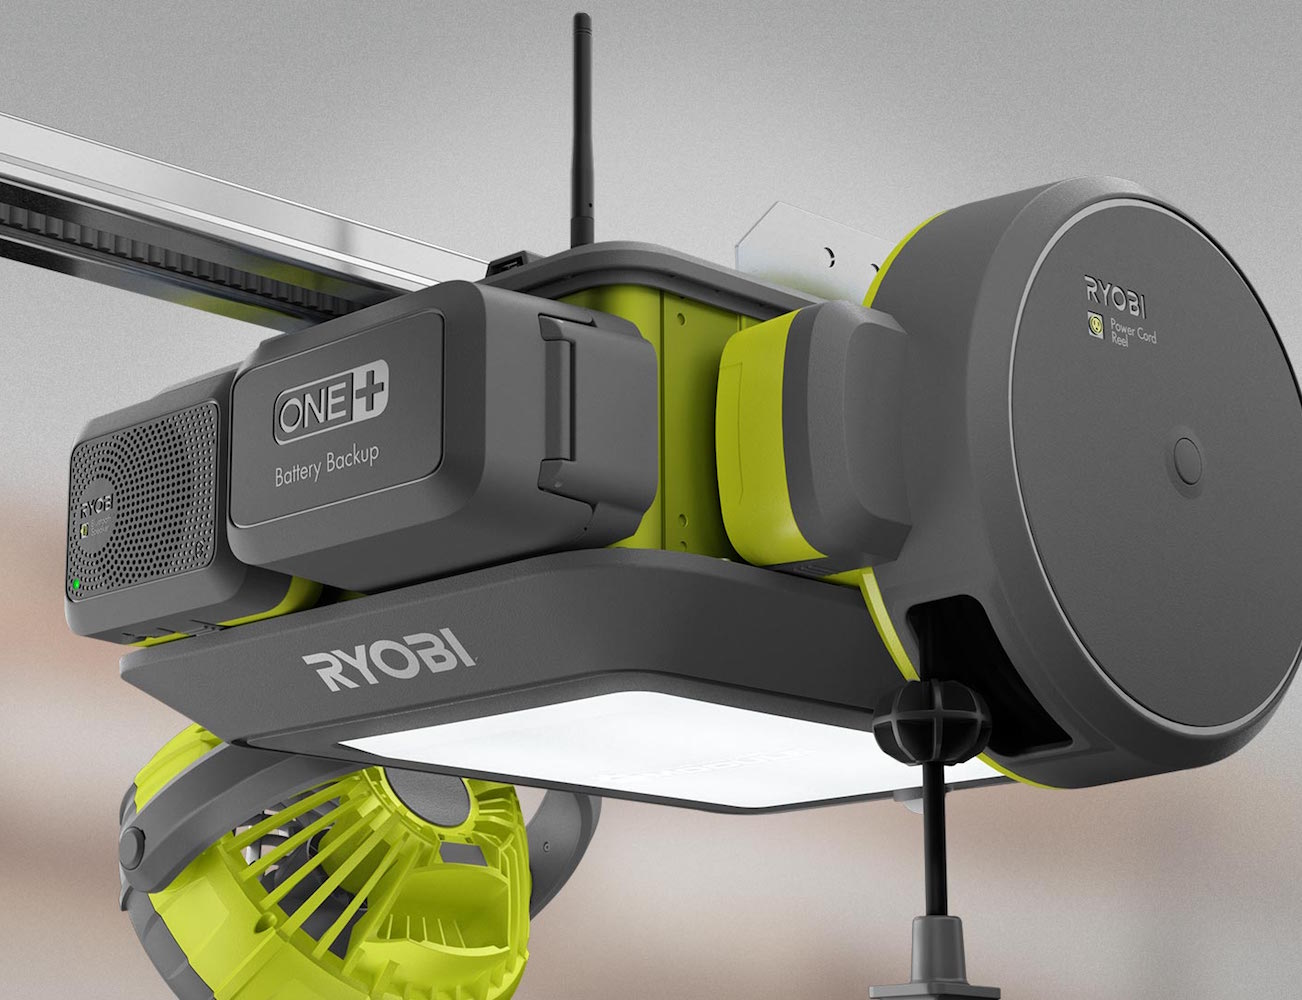 RYOBI UltraQuiet Garage Door Opener  Gadget Flow